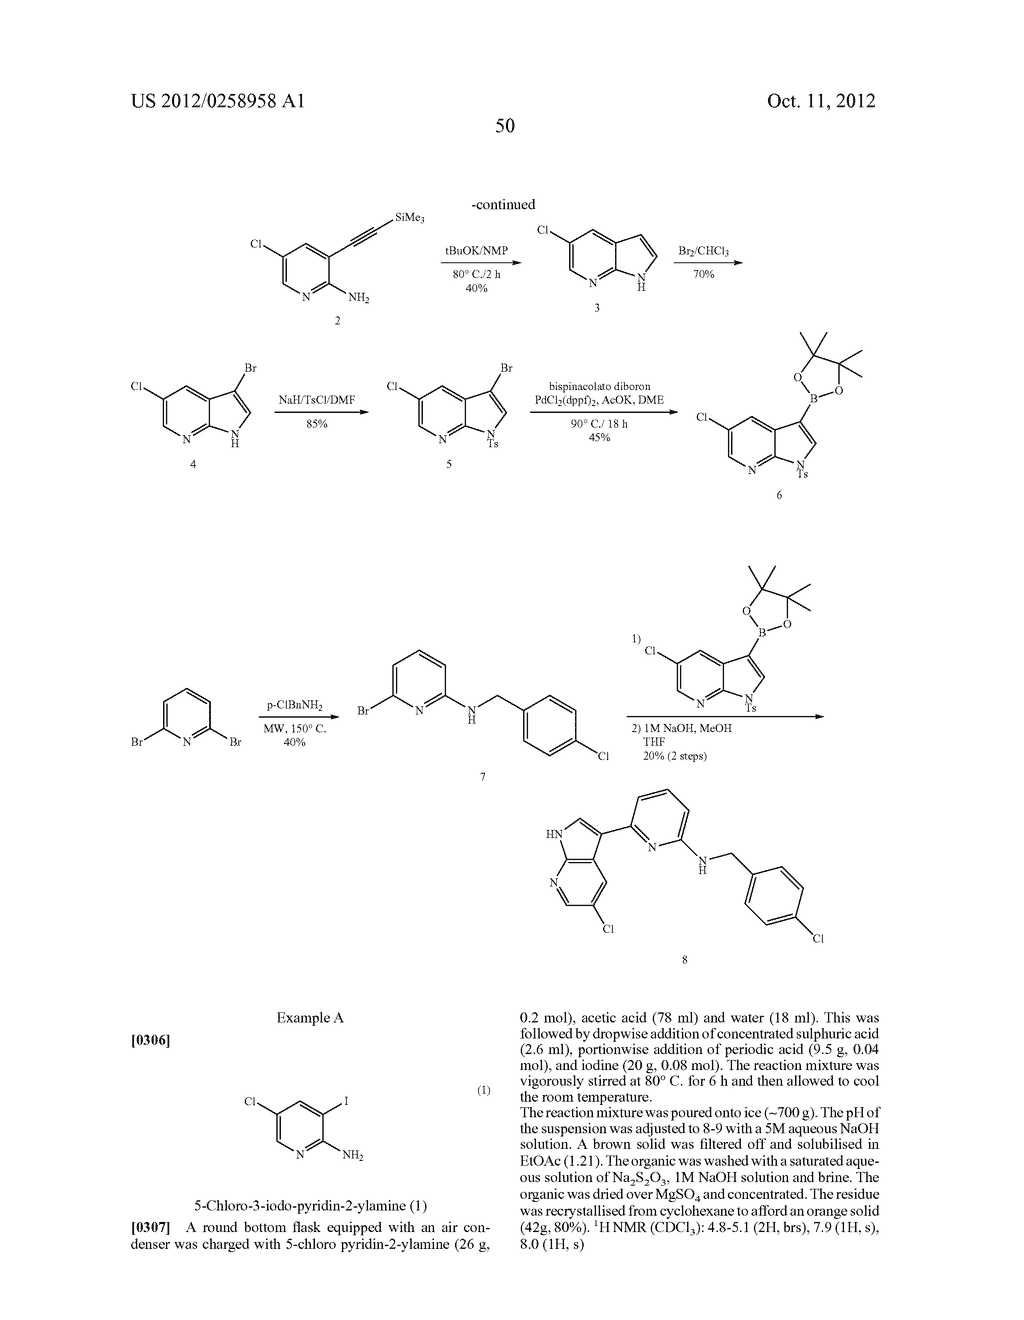 AZAINDOLES USEFUL AS INHIBITORS OF JAK AND OTHER PROTEIN KINASES - diagram, schematic, and image 51